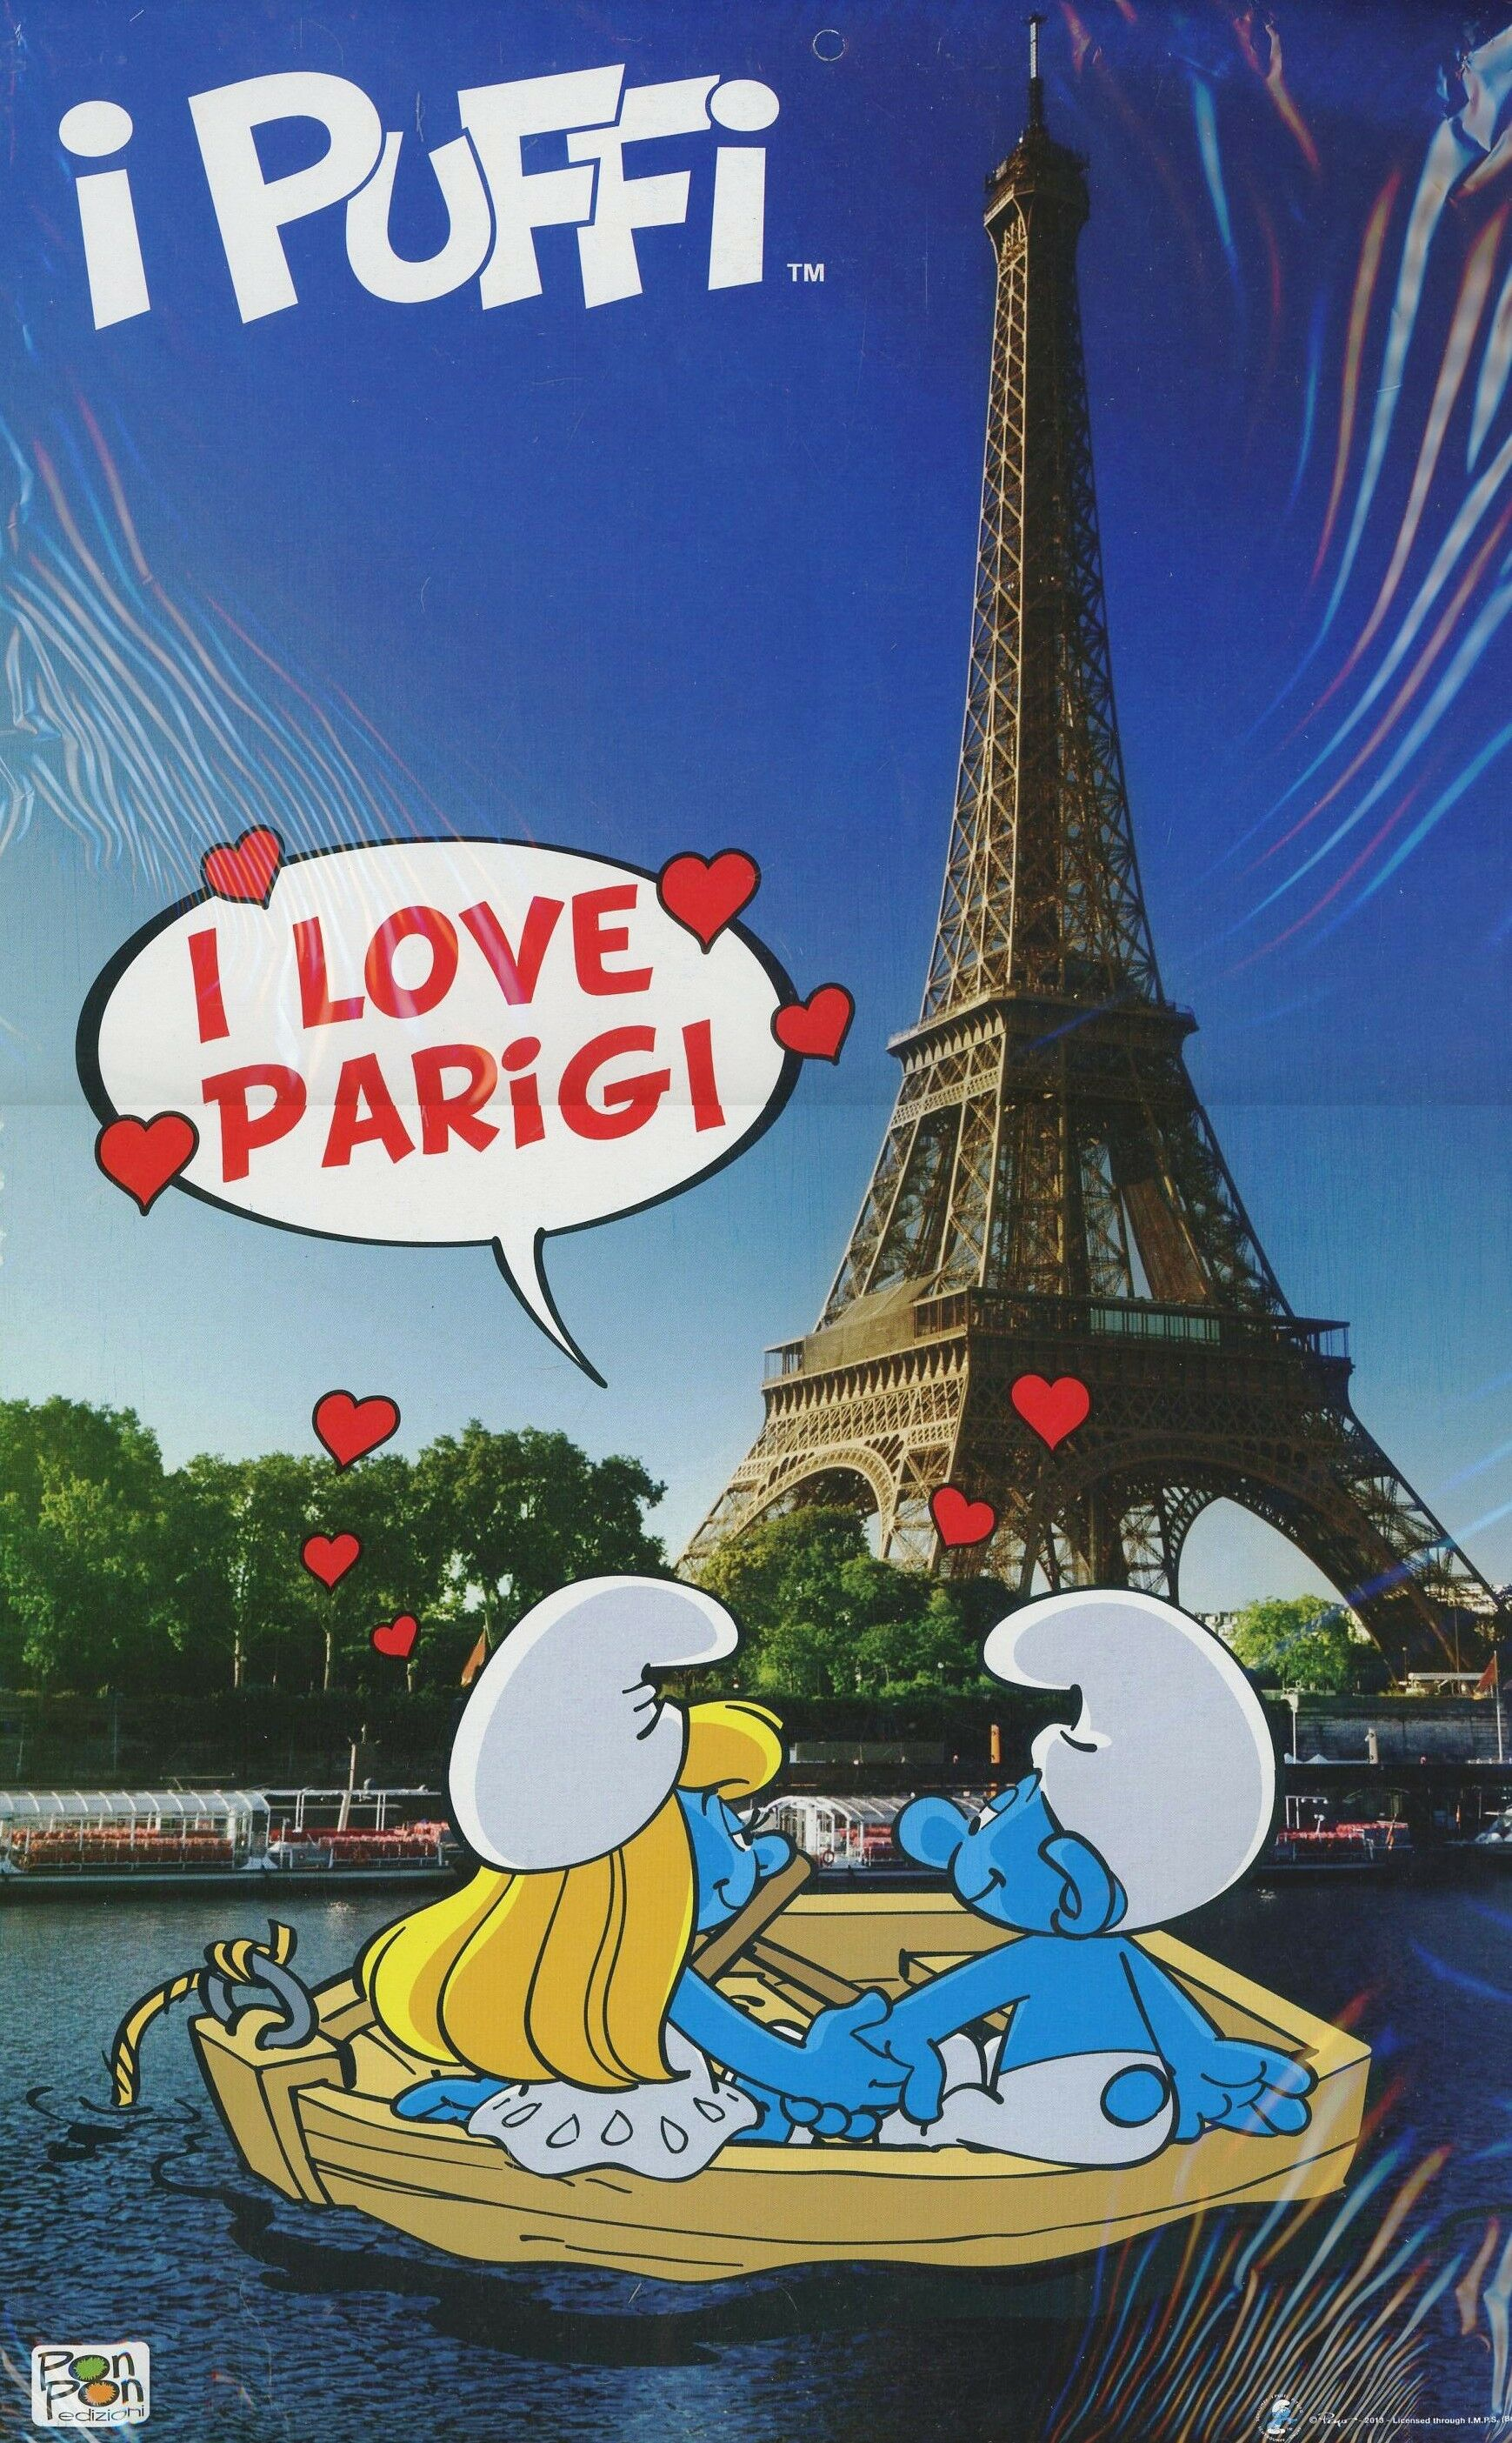 I love Parigi... con i puffi. Travel Book